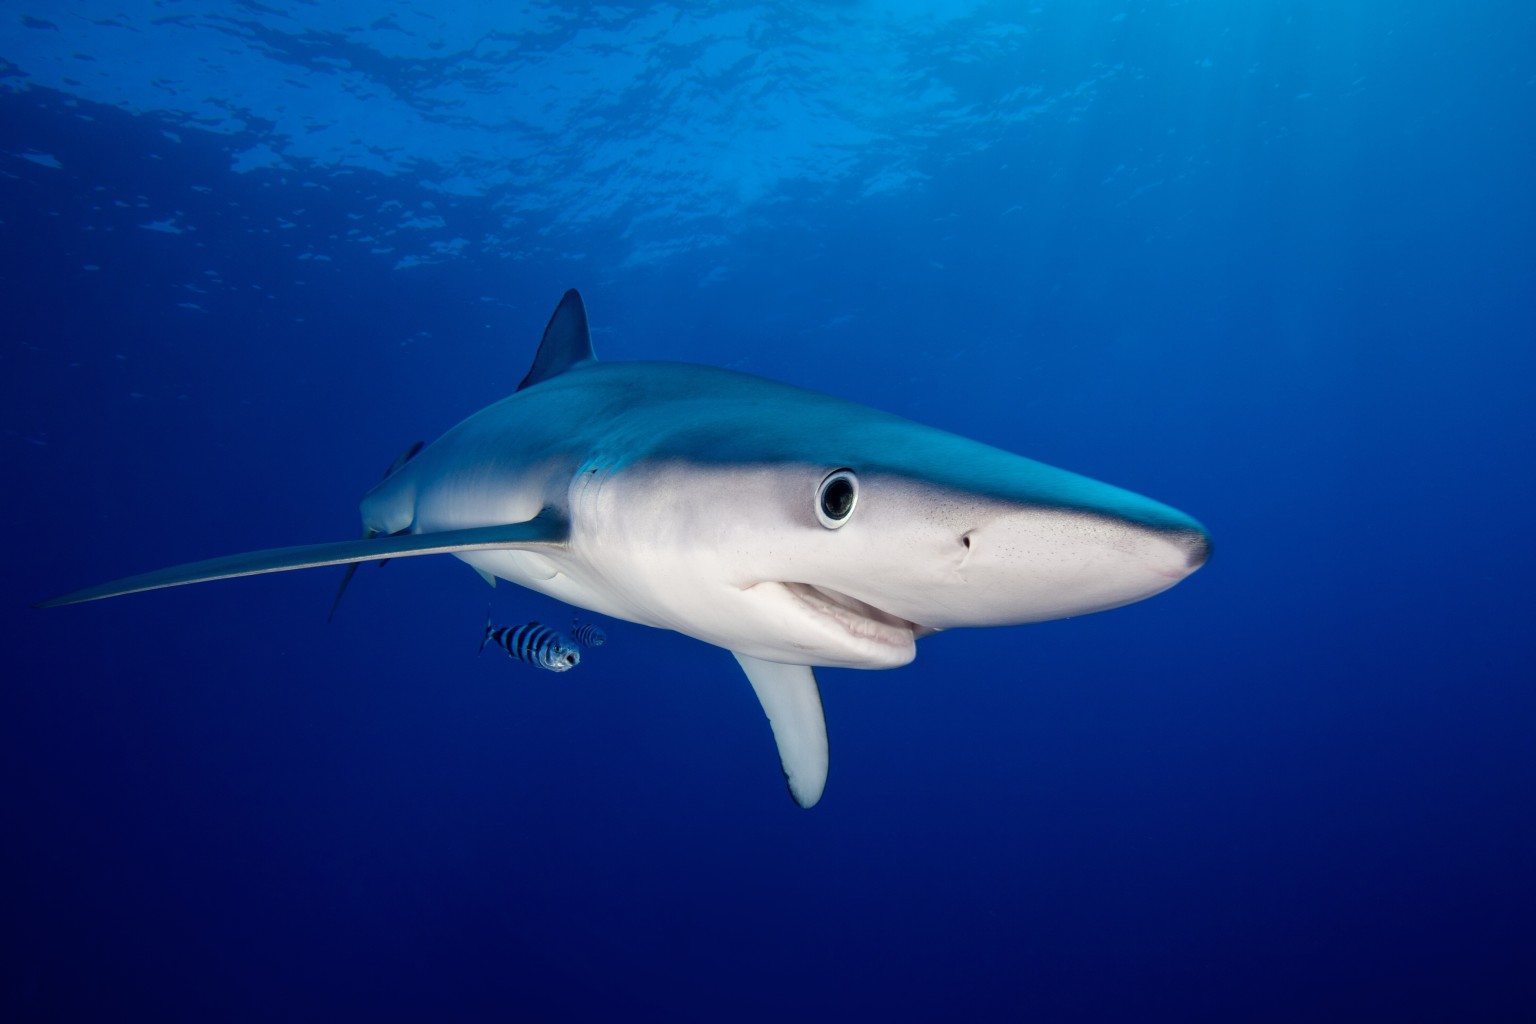 the united states are responsible for killing blue sharks 10 the blue shark has been recorded attacking humans 13 times, which pales in  comparison to the 10-20 million killed by humans each year for food and sport   9 bronze whaler sharks are responsible for 15 attacks on humans since 1580   edition international editions: united states us.